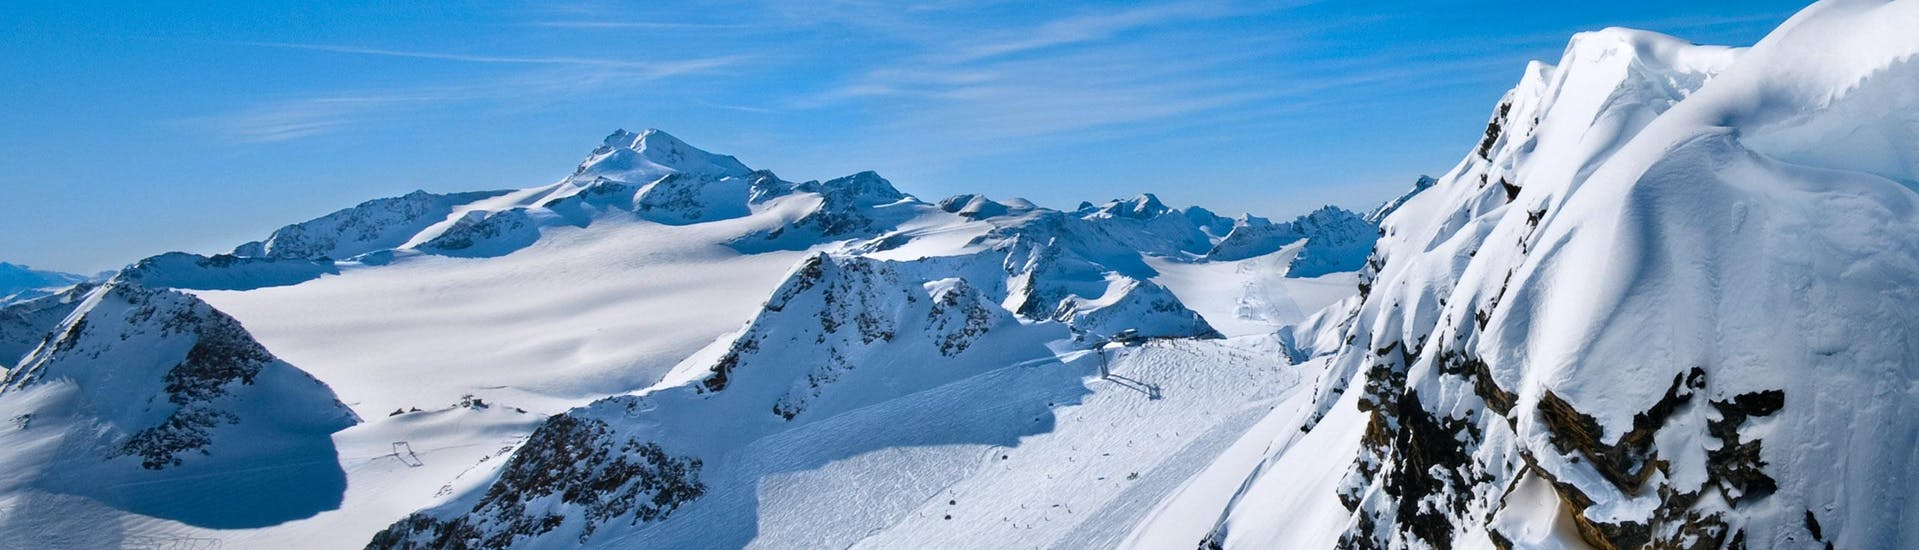 A view of a snowy mountain top in the ski resort of Saanenmöser, where ski schools gather to start their ski lessons.